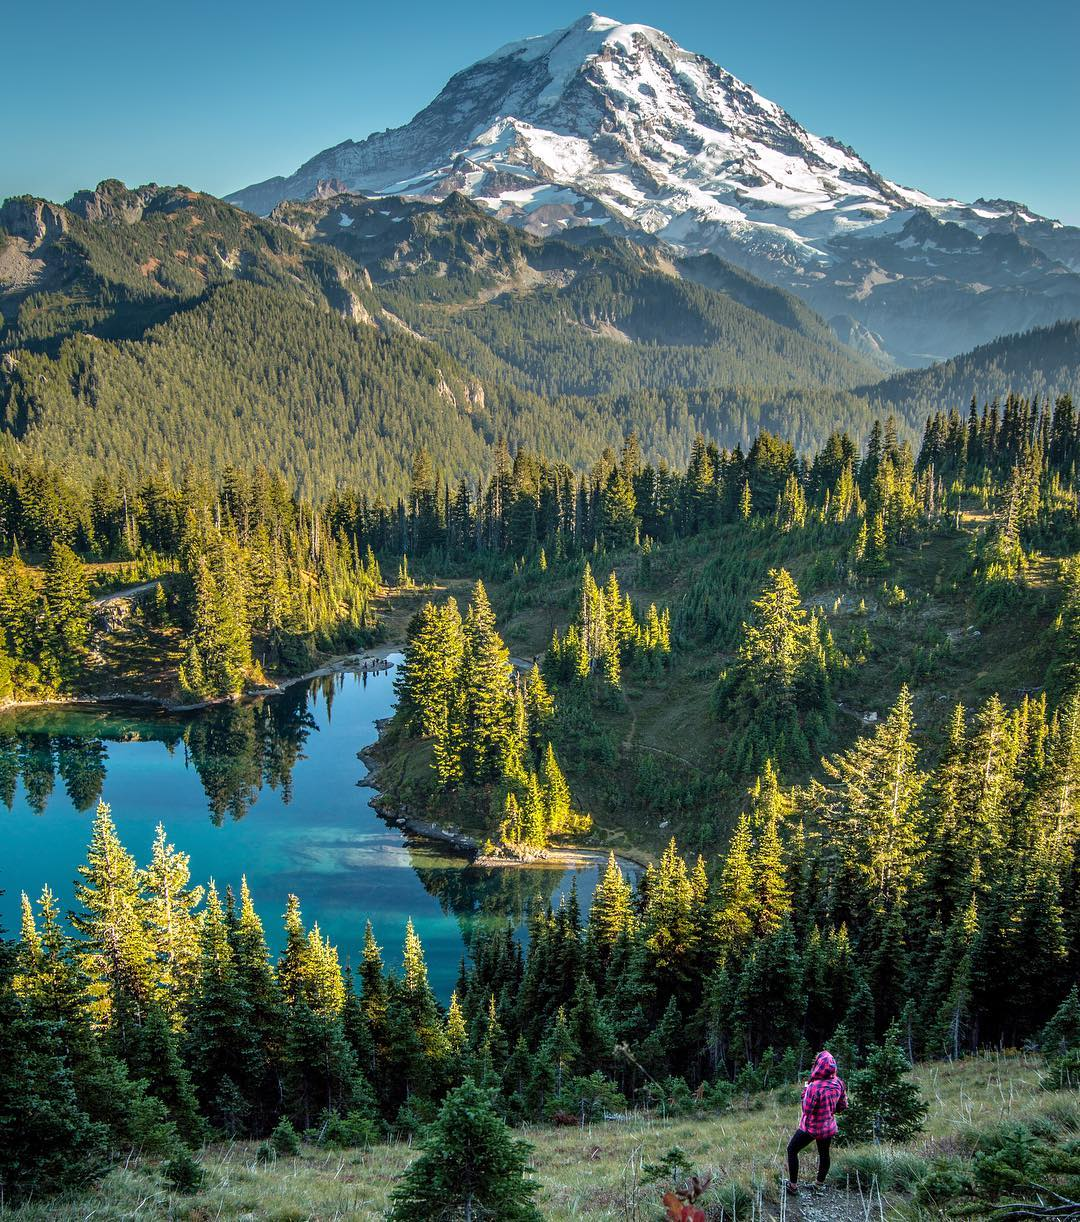 Seattle travel guide SIA - mount rainier national park